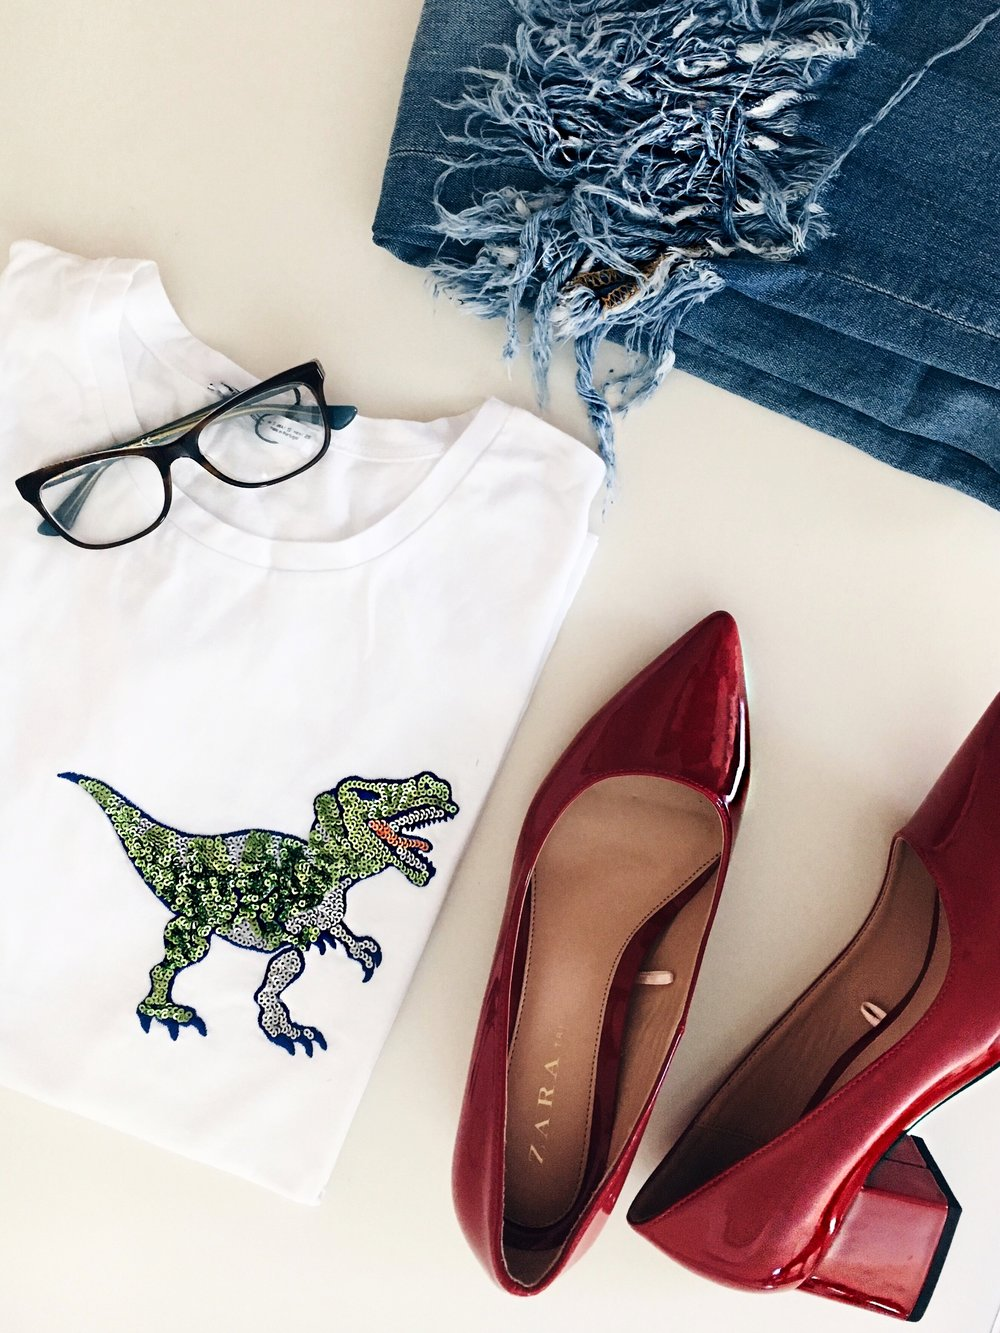 Top: Zara, Jeans: Zara, Shoes: Zara, Glasses: Vogue Eyewear